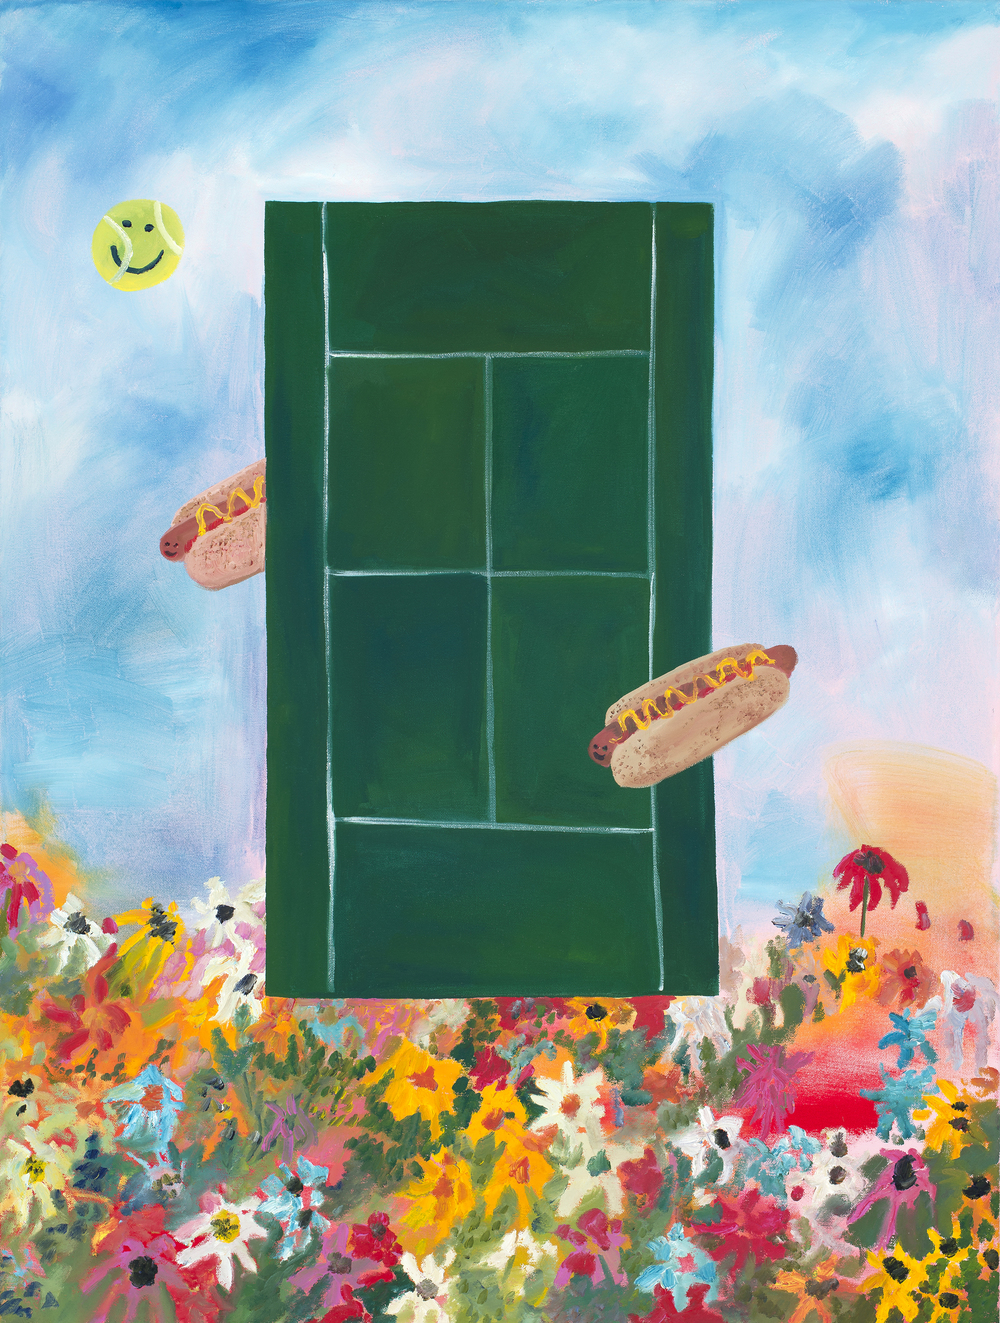 Sarah Osborne_If I Played Tennis I would eat Hot Dogs at the Same Time.jpg